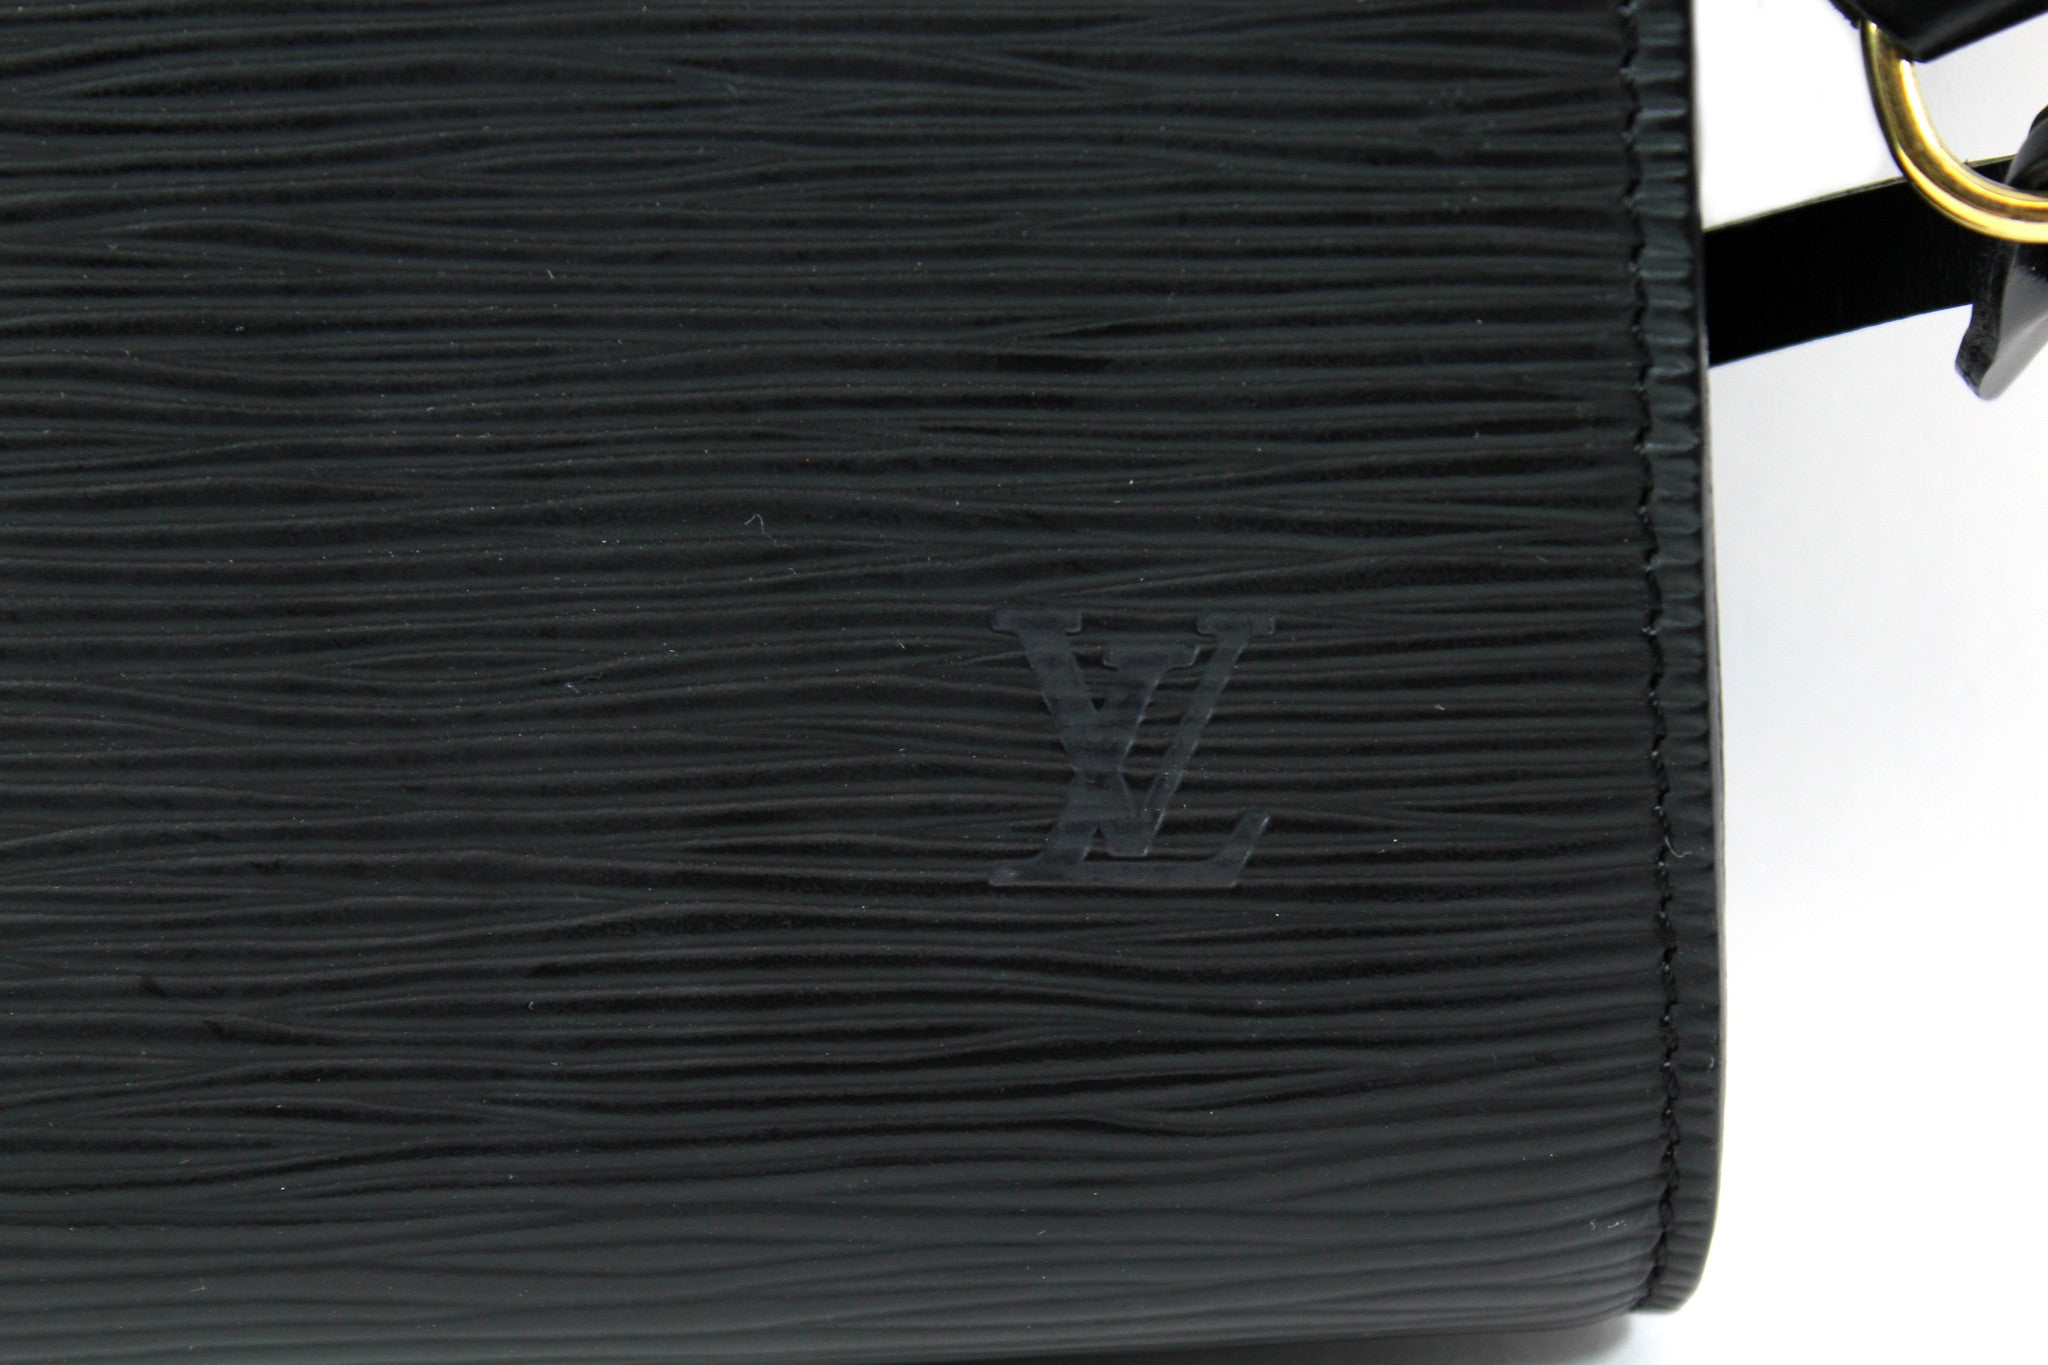 Louis Vuitton Epi Leather Pouchette